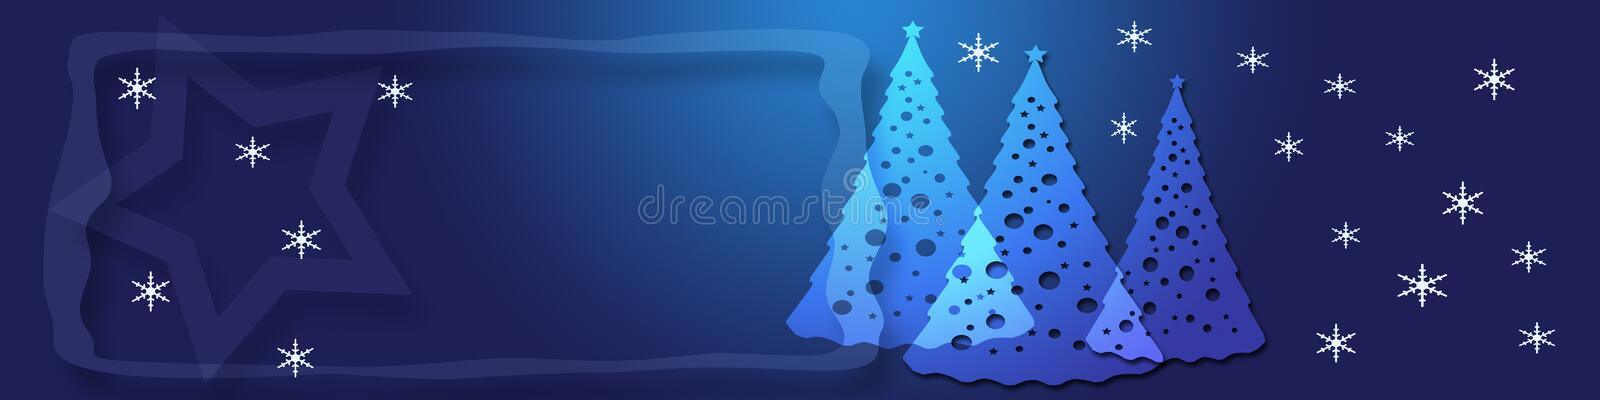 Blue Christmas banner. Banner / header with christmas trees, snowflakes and a big star in the background. There is room for text too stock illustration